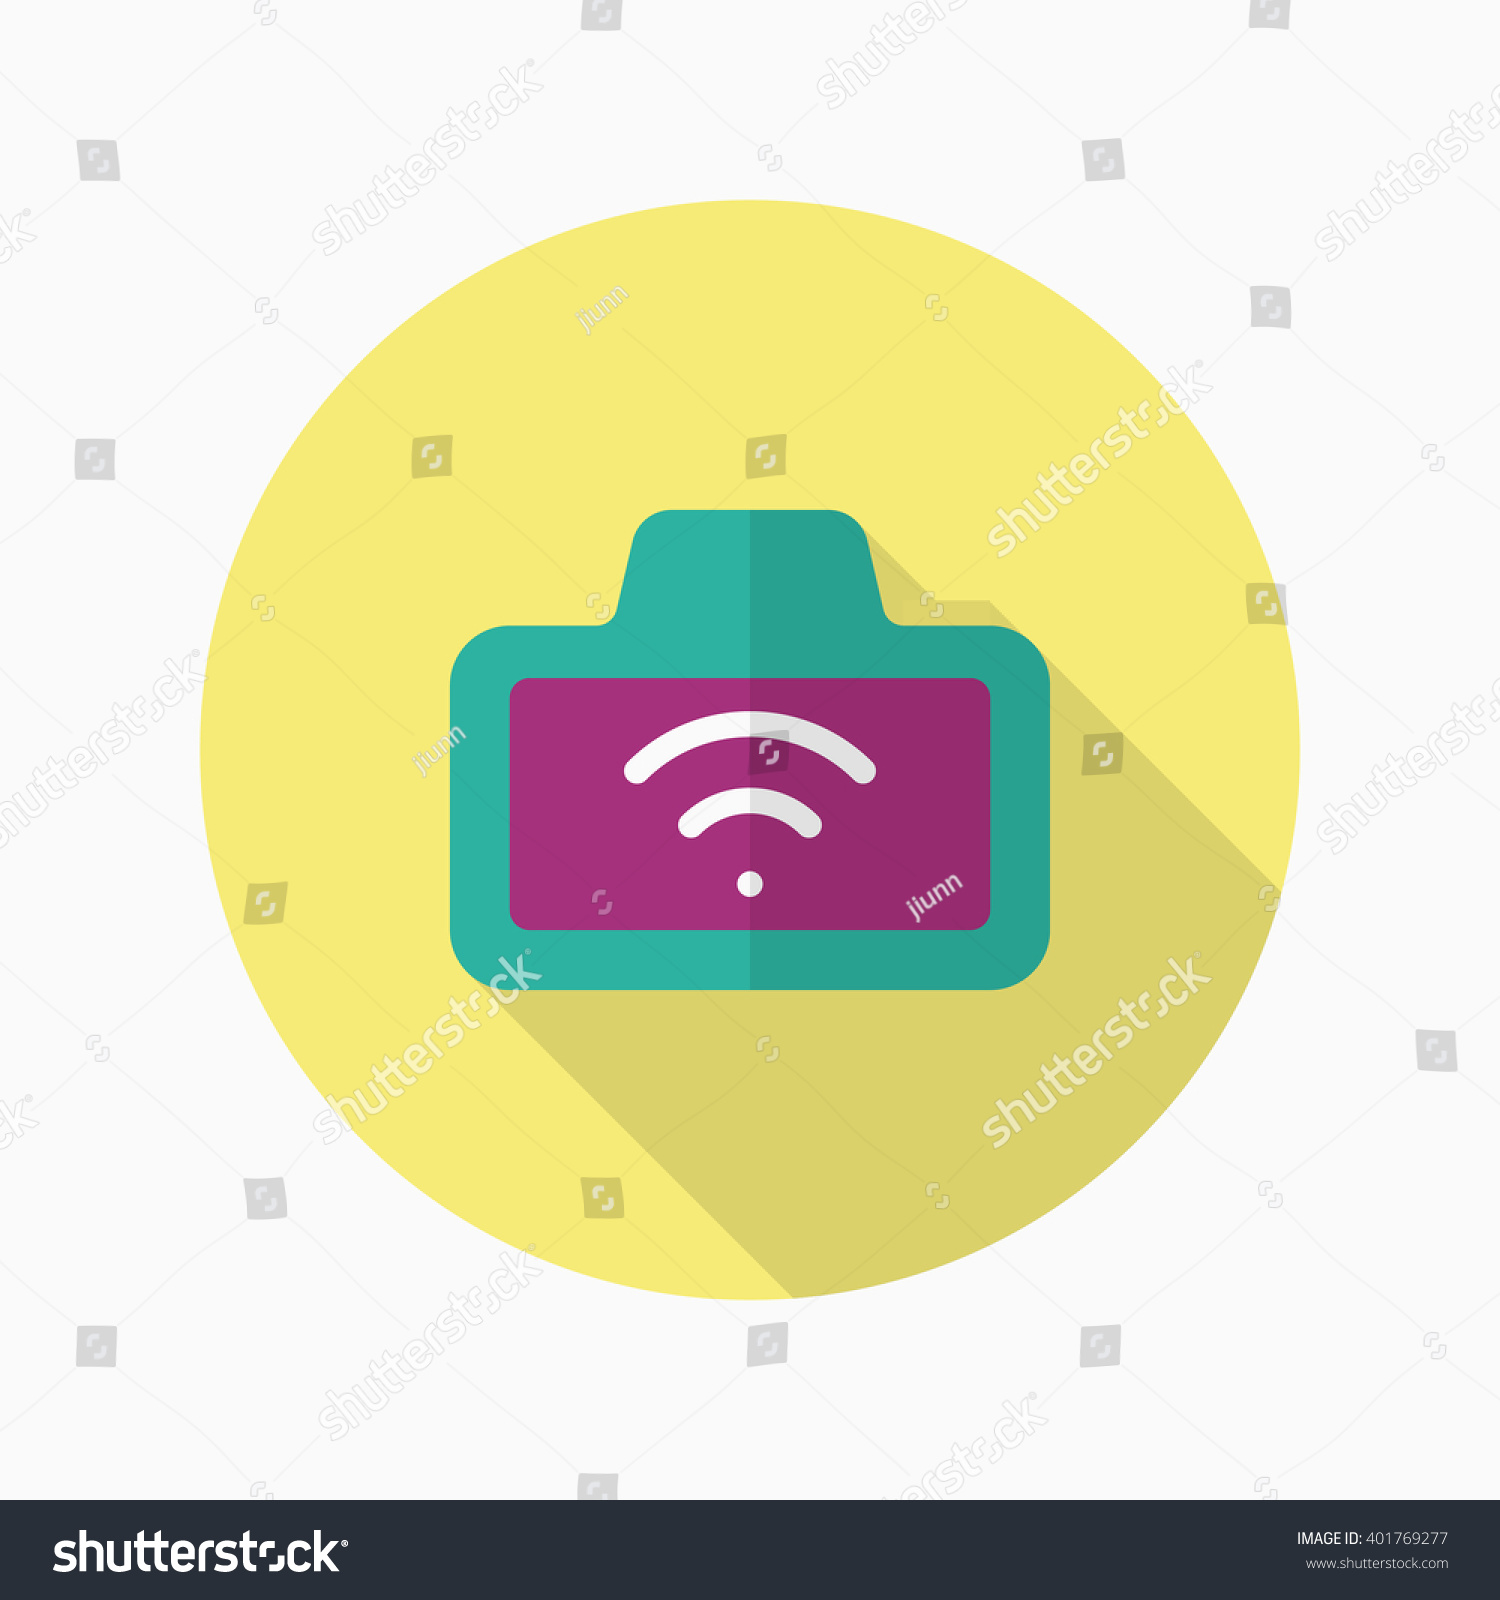 Wireless Camera Icon Vector Flat Long Stock Royalty Free Diagram Shadow Design